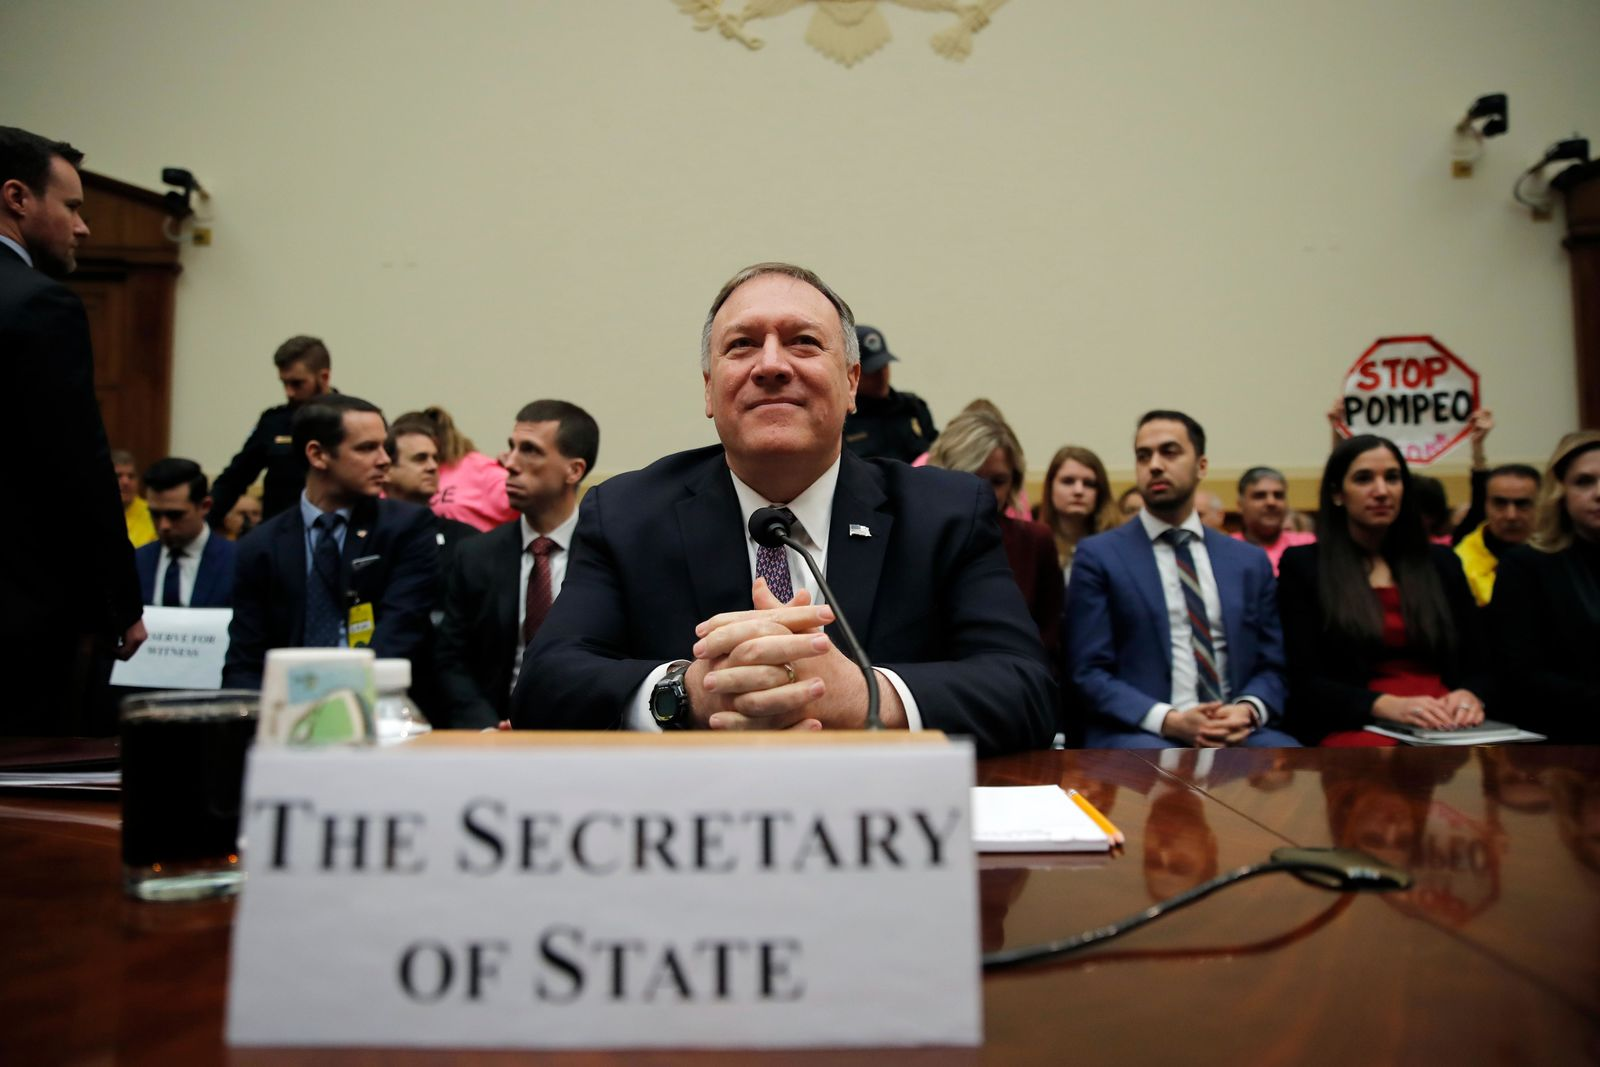 Secretary of State Mike Pompeo arrives to testify during a House Foreign Affairs Committee hearing on Capitol Hill in Washington, Friday, Feb. 28, 2020 (AP Photo/Carolyn Kaster)